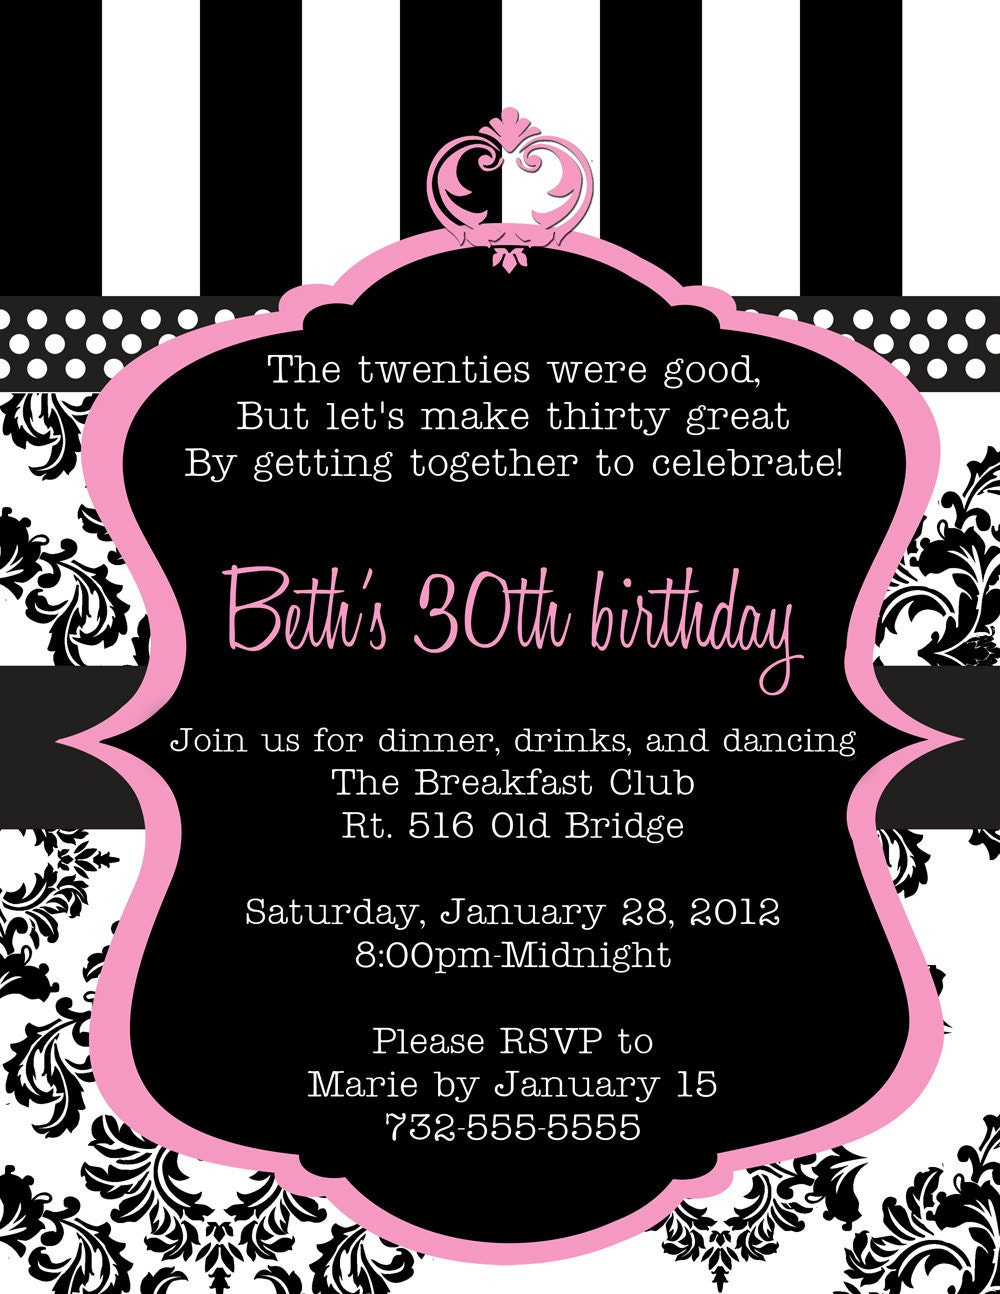 30Th Birthday Invitations For Her is one of our best ideas you might choose for invitation design